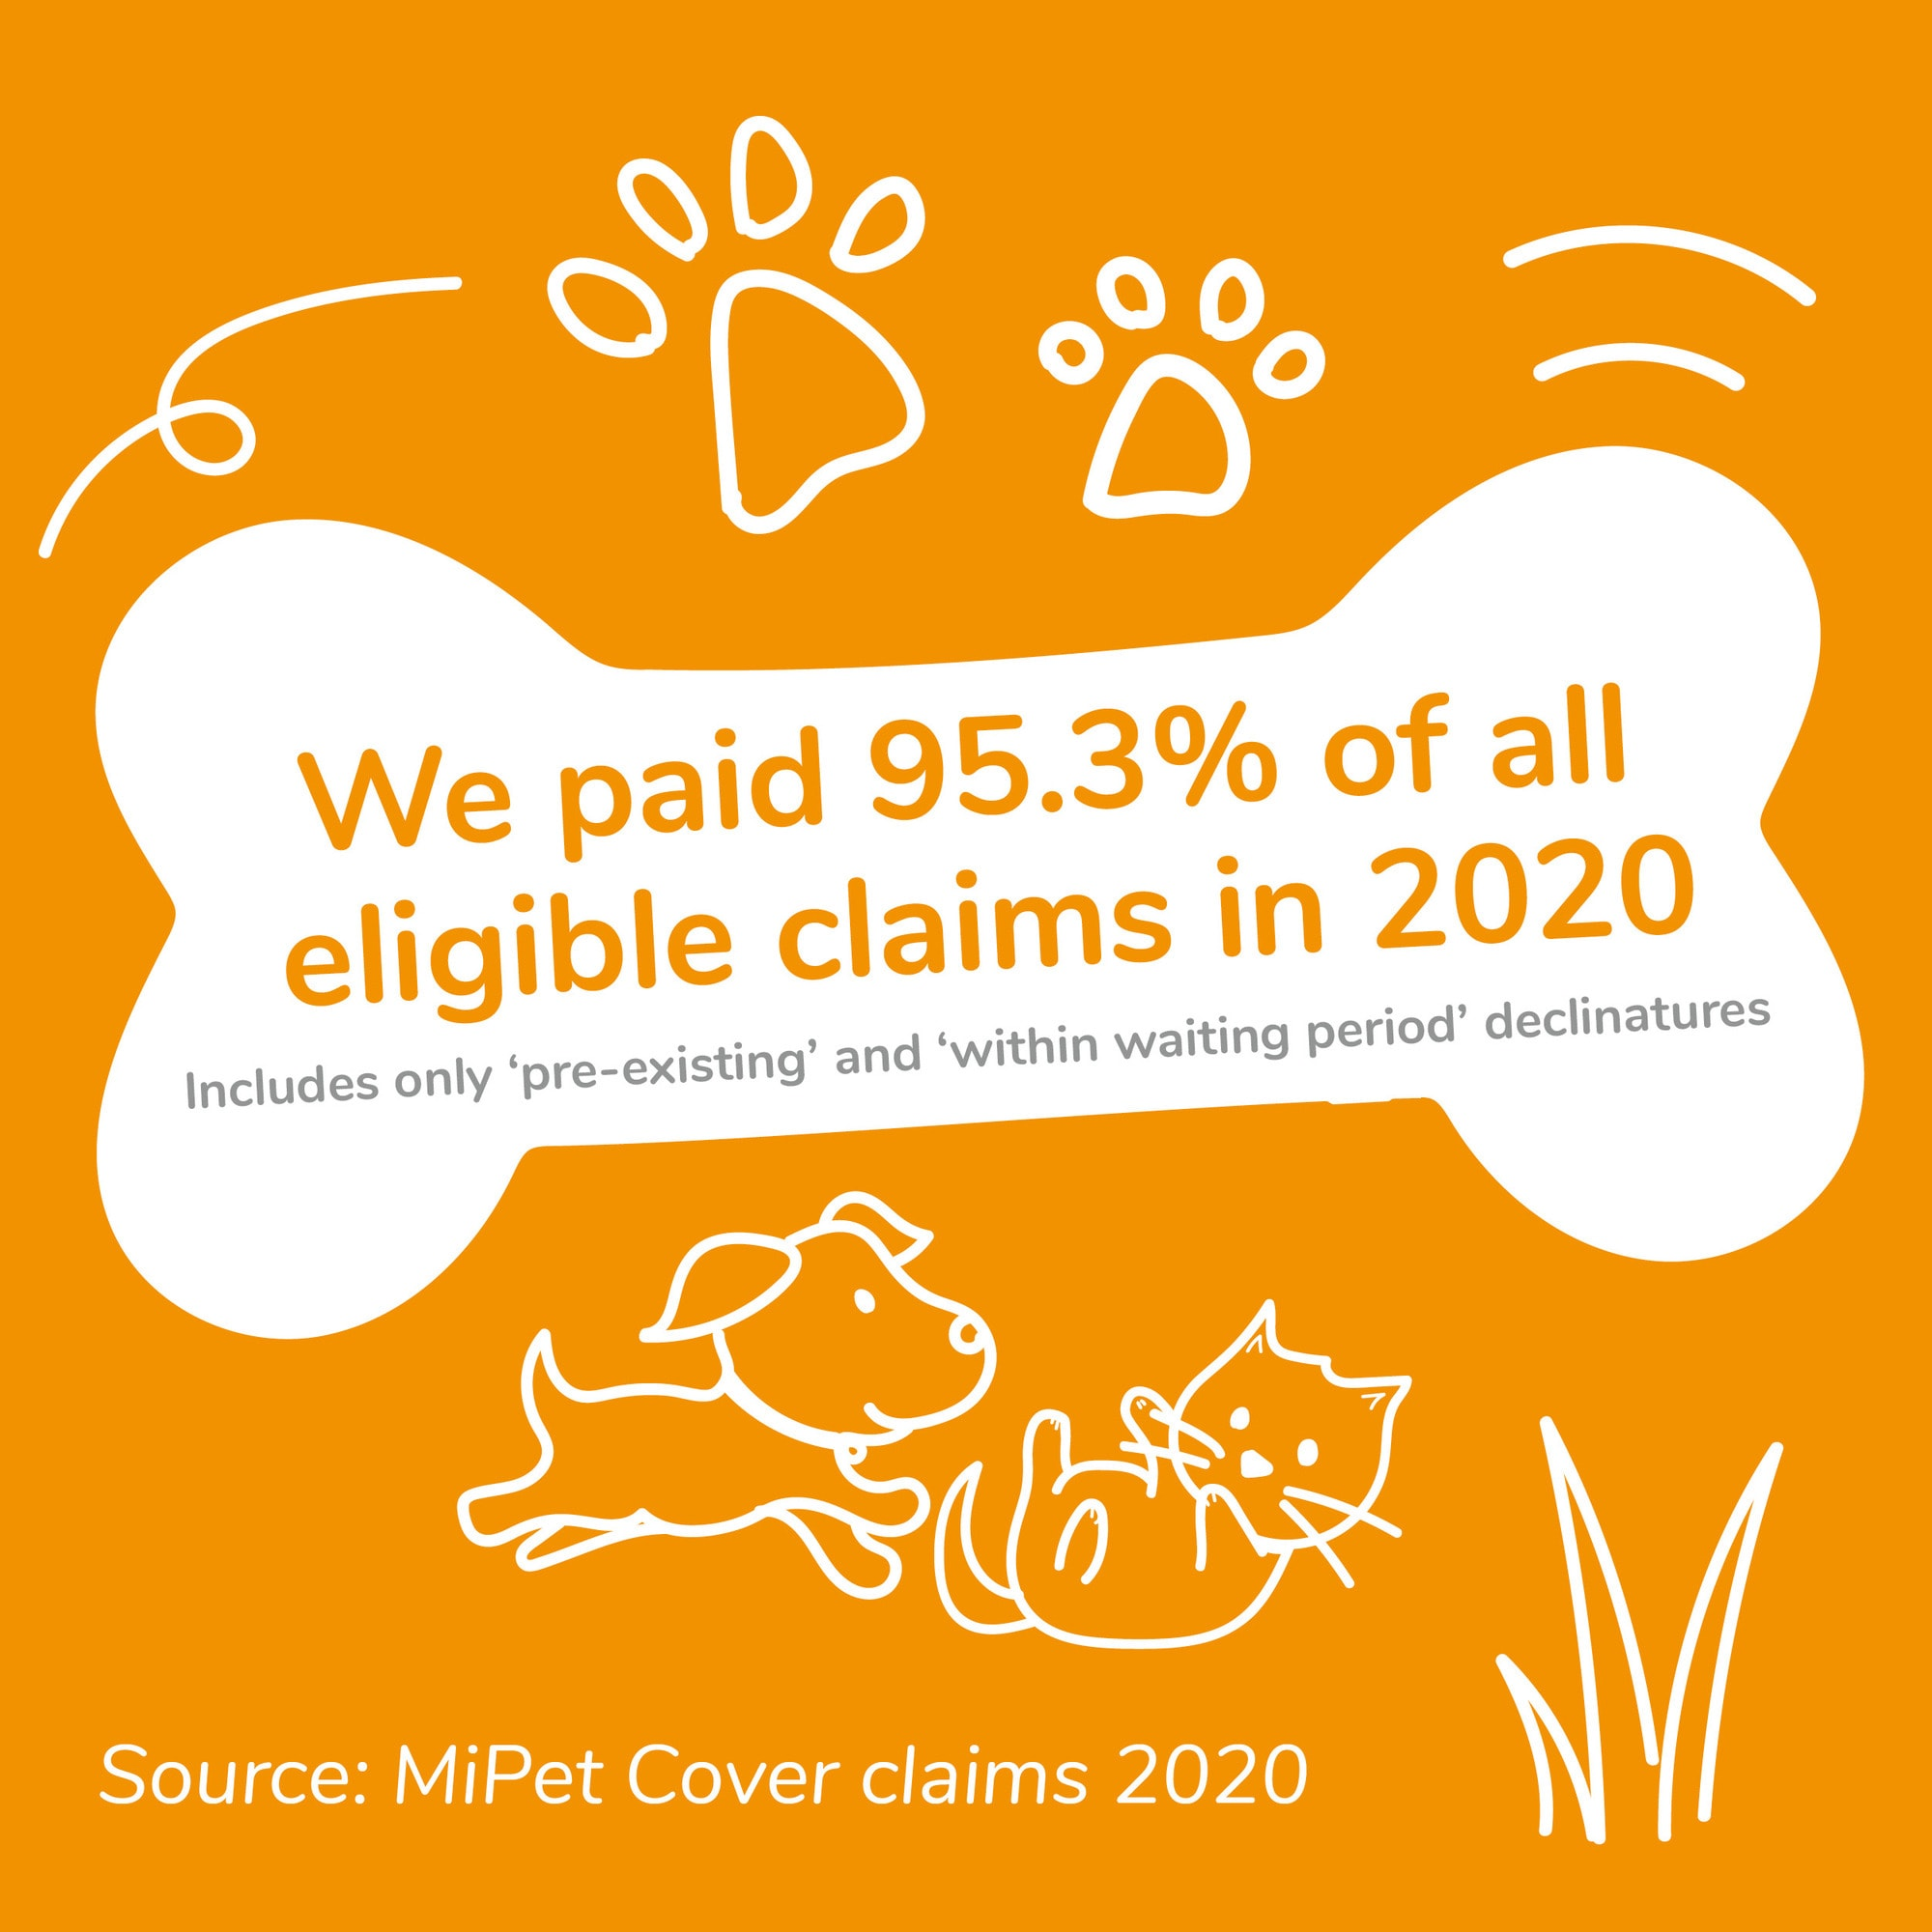 MiPet Cover paid 95.3% of pet insurance claims during 2020